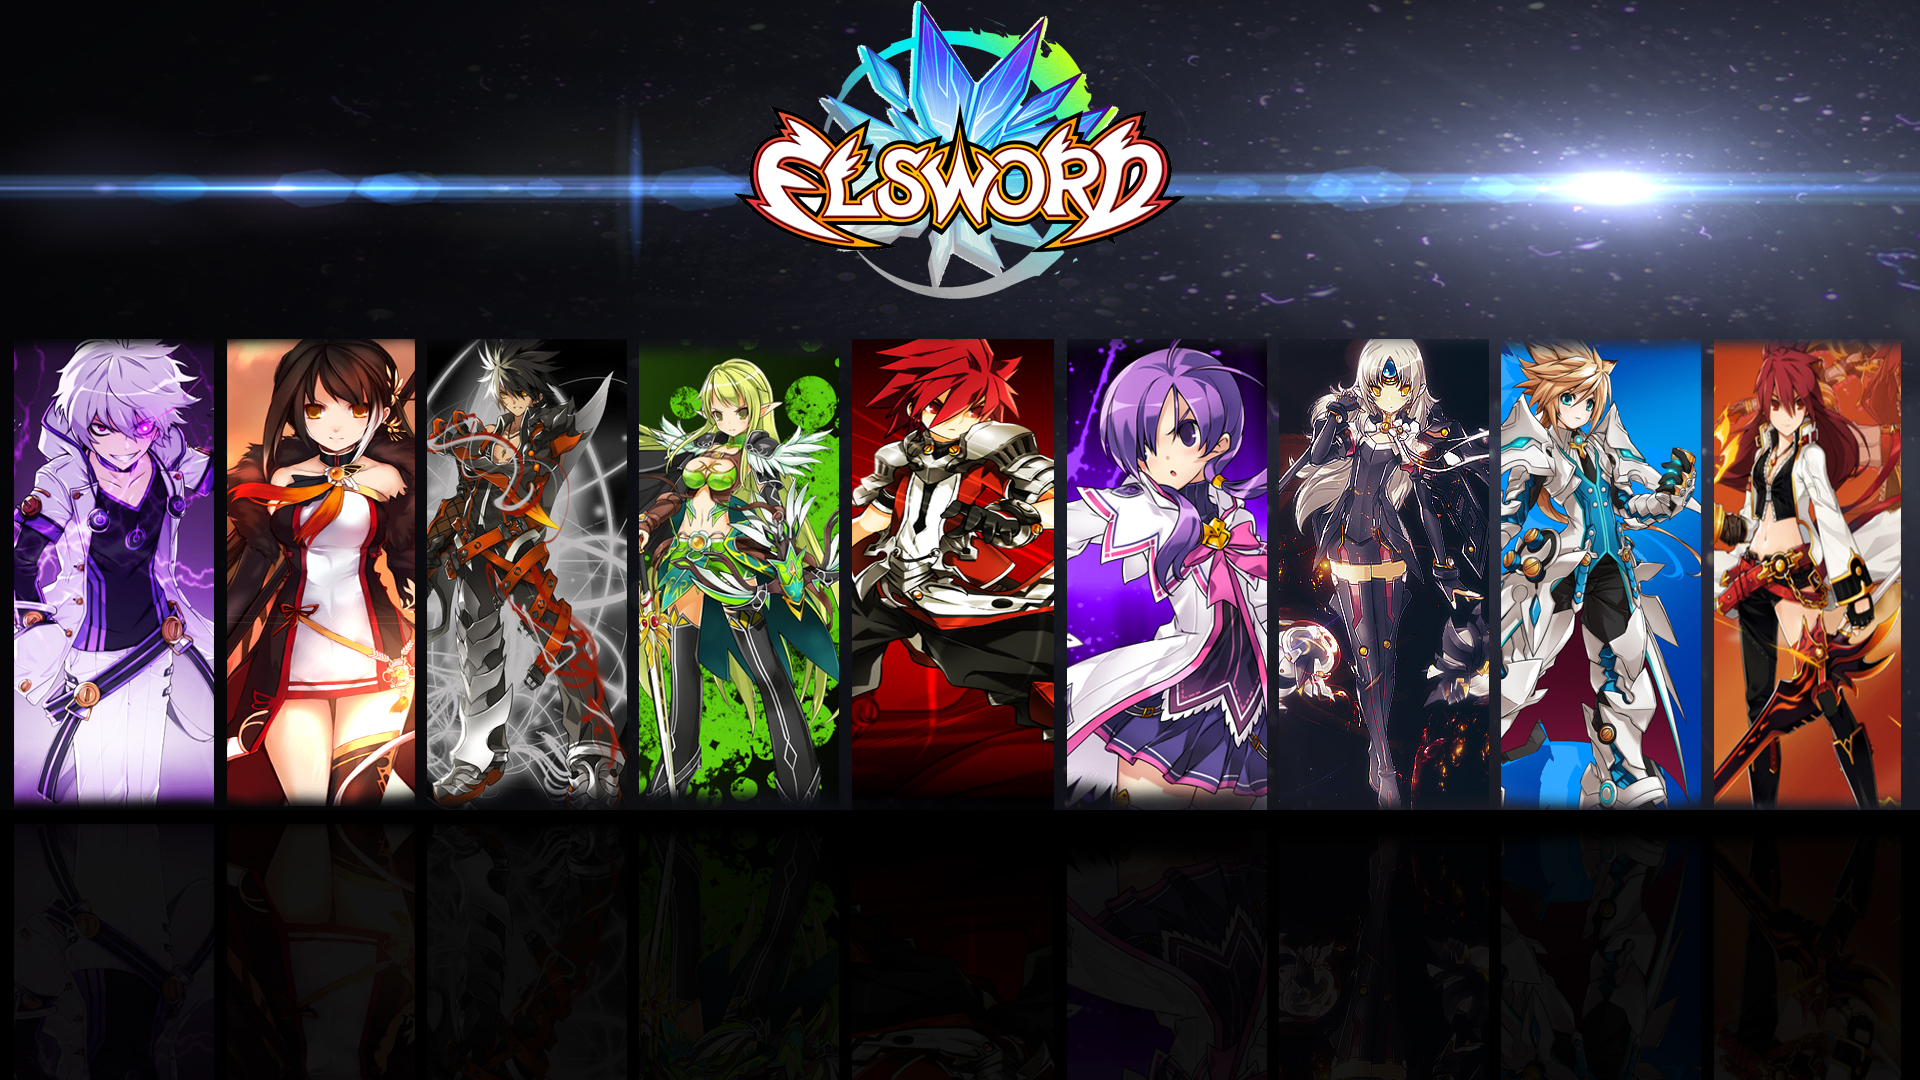 Elsword wallpaper 1920x1080 by virispt on deviantart elsword wallpaper 1920x1080 by virispt elsword wallpaper 1920x1080 by virispt voltagebd Choice Image